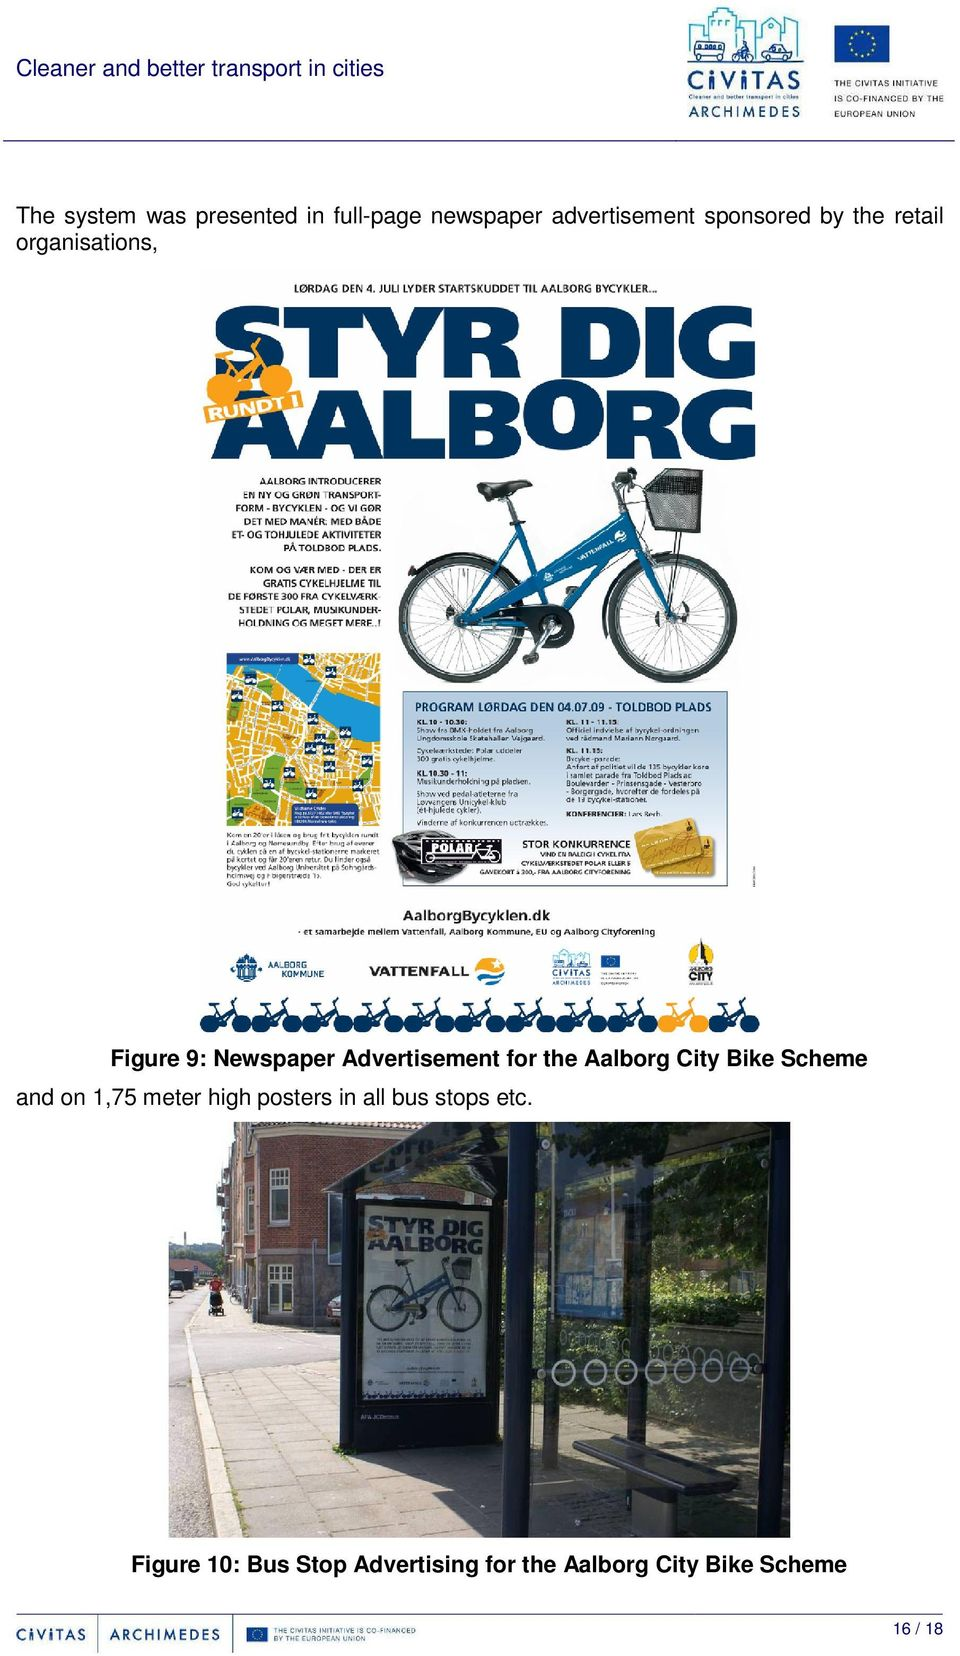 Aalborg City Bike Scheme and on 1,75 meter high posters in all bus stops